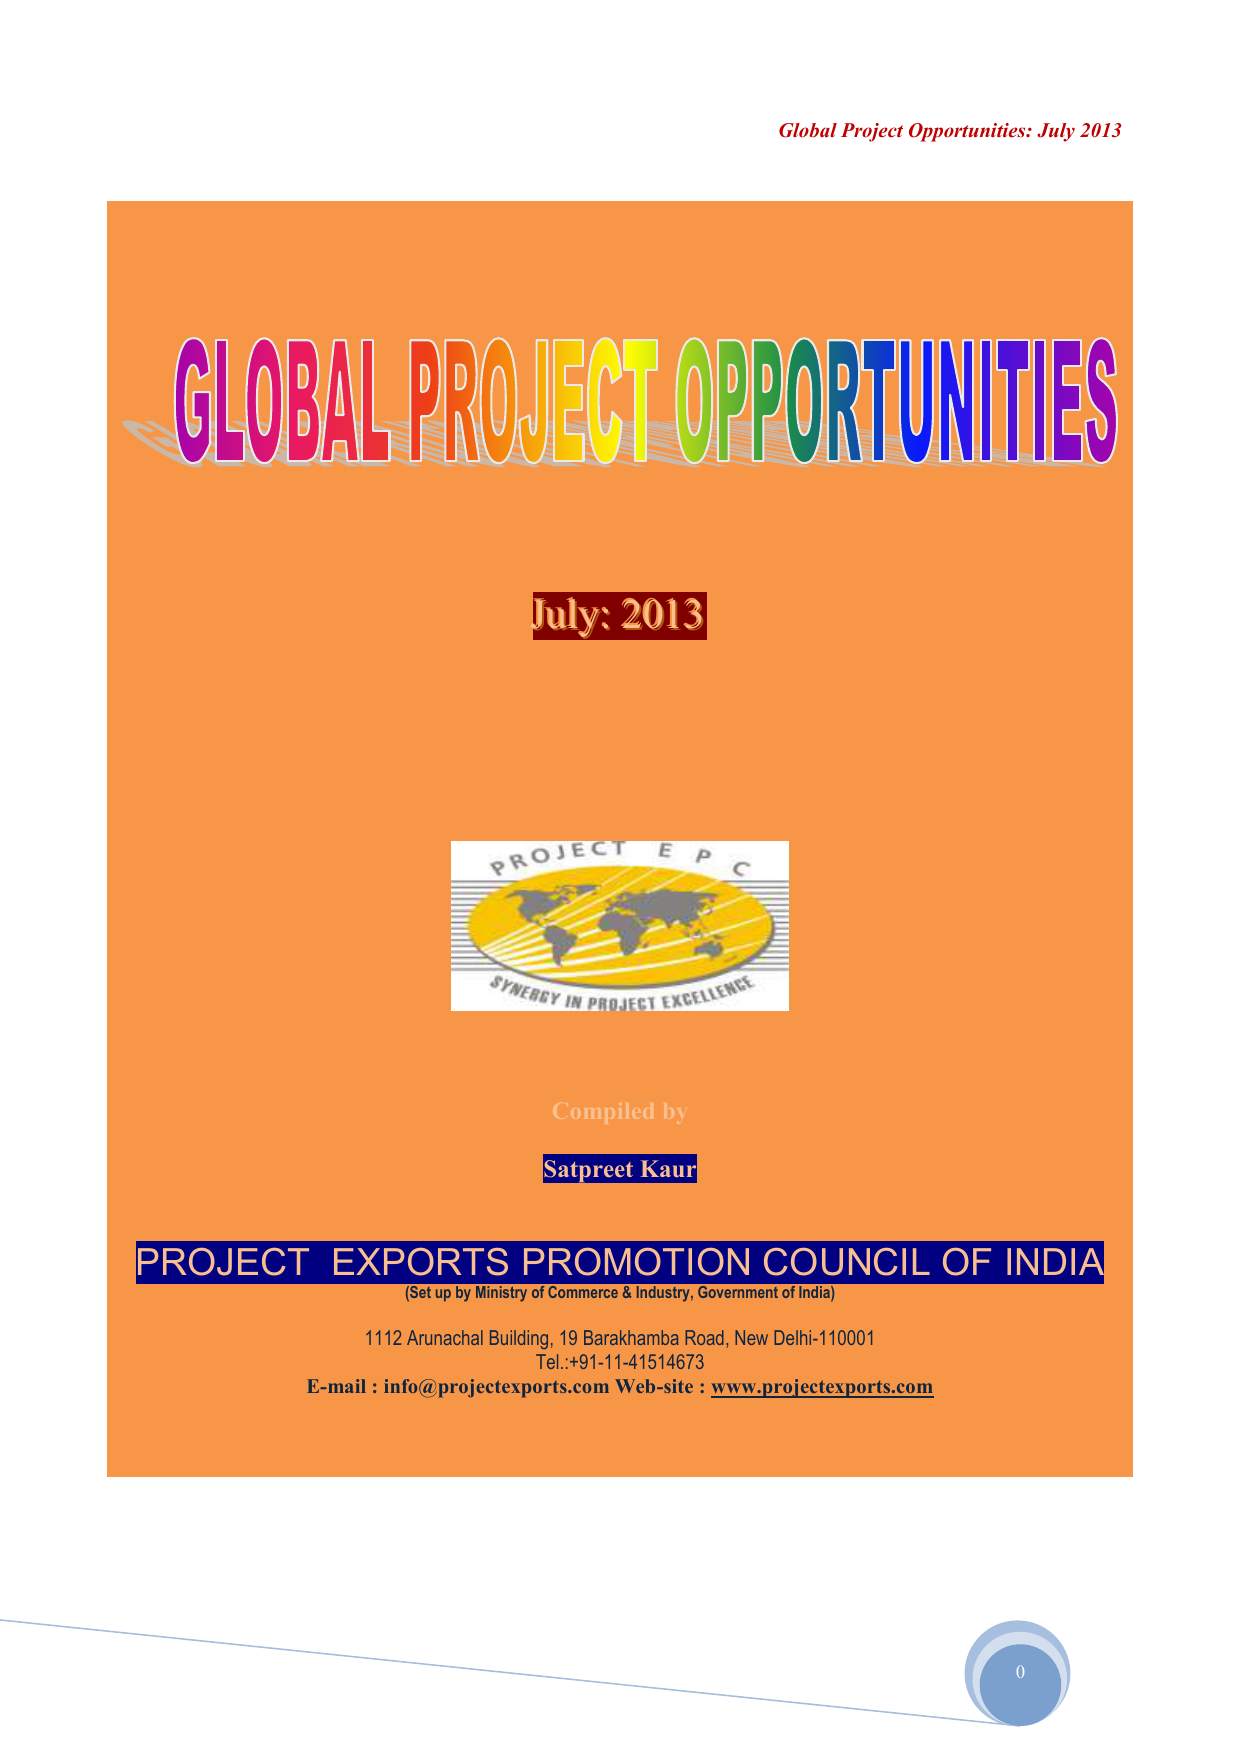 GPO 07- 2013 - Project Exports Promotion Council of India